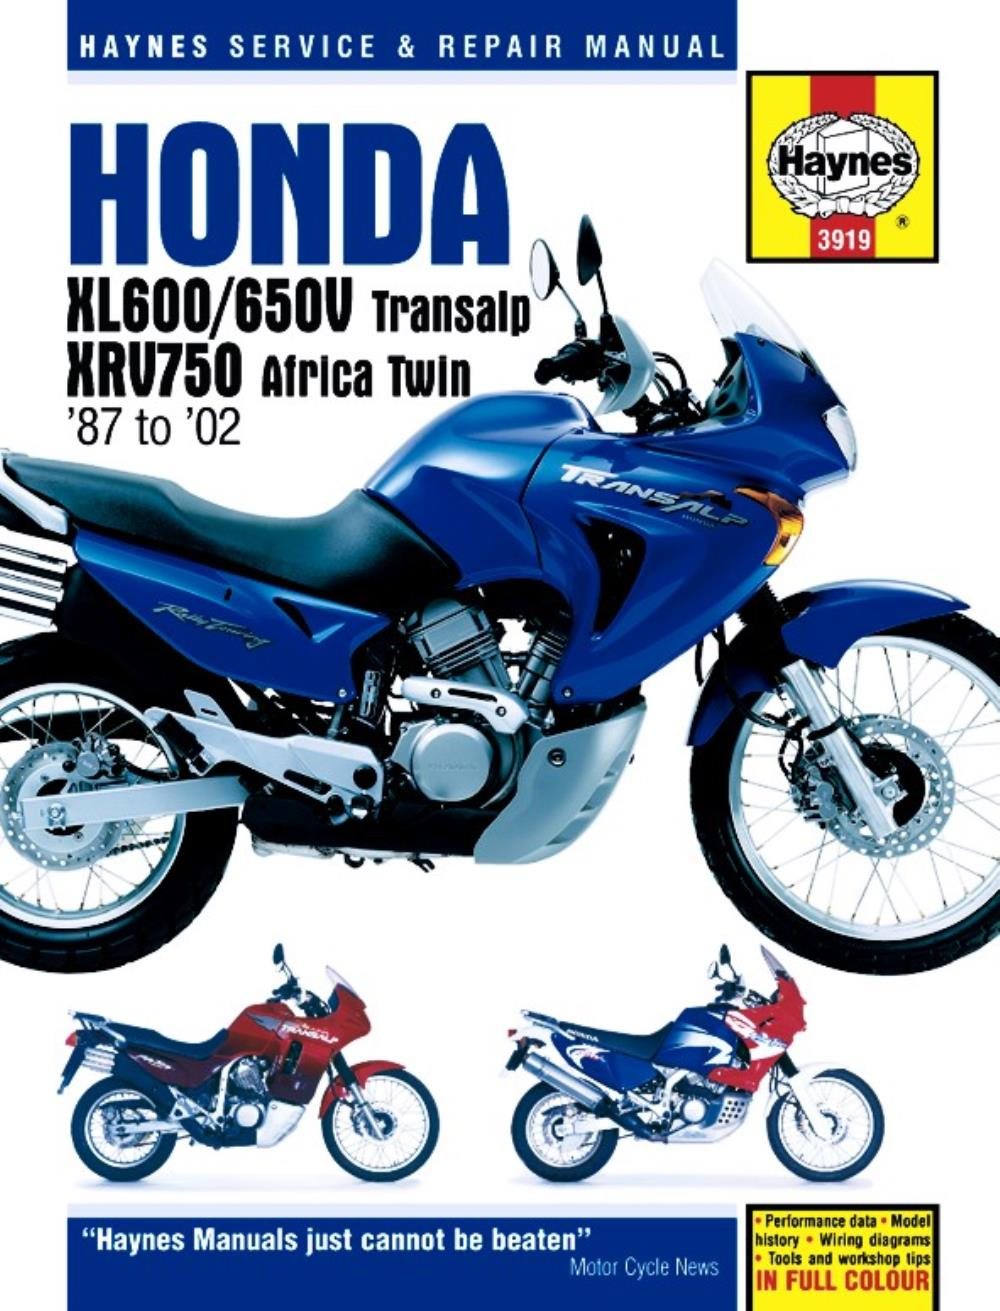 manual haynes for 1995 honda xrv 750 s africa twin rd07 ebay rh ebay co uk honda xrv 750 africa twin manual pdf Craigslist Honda Africa Twin